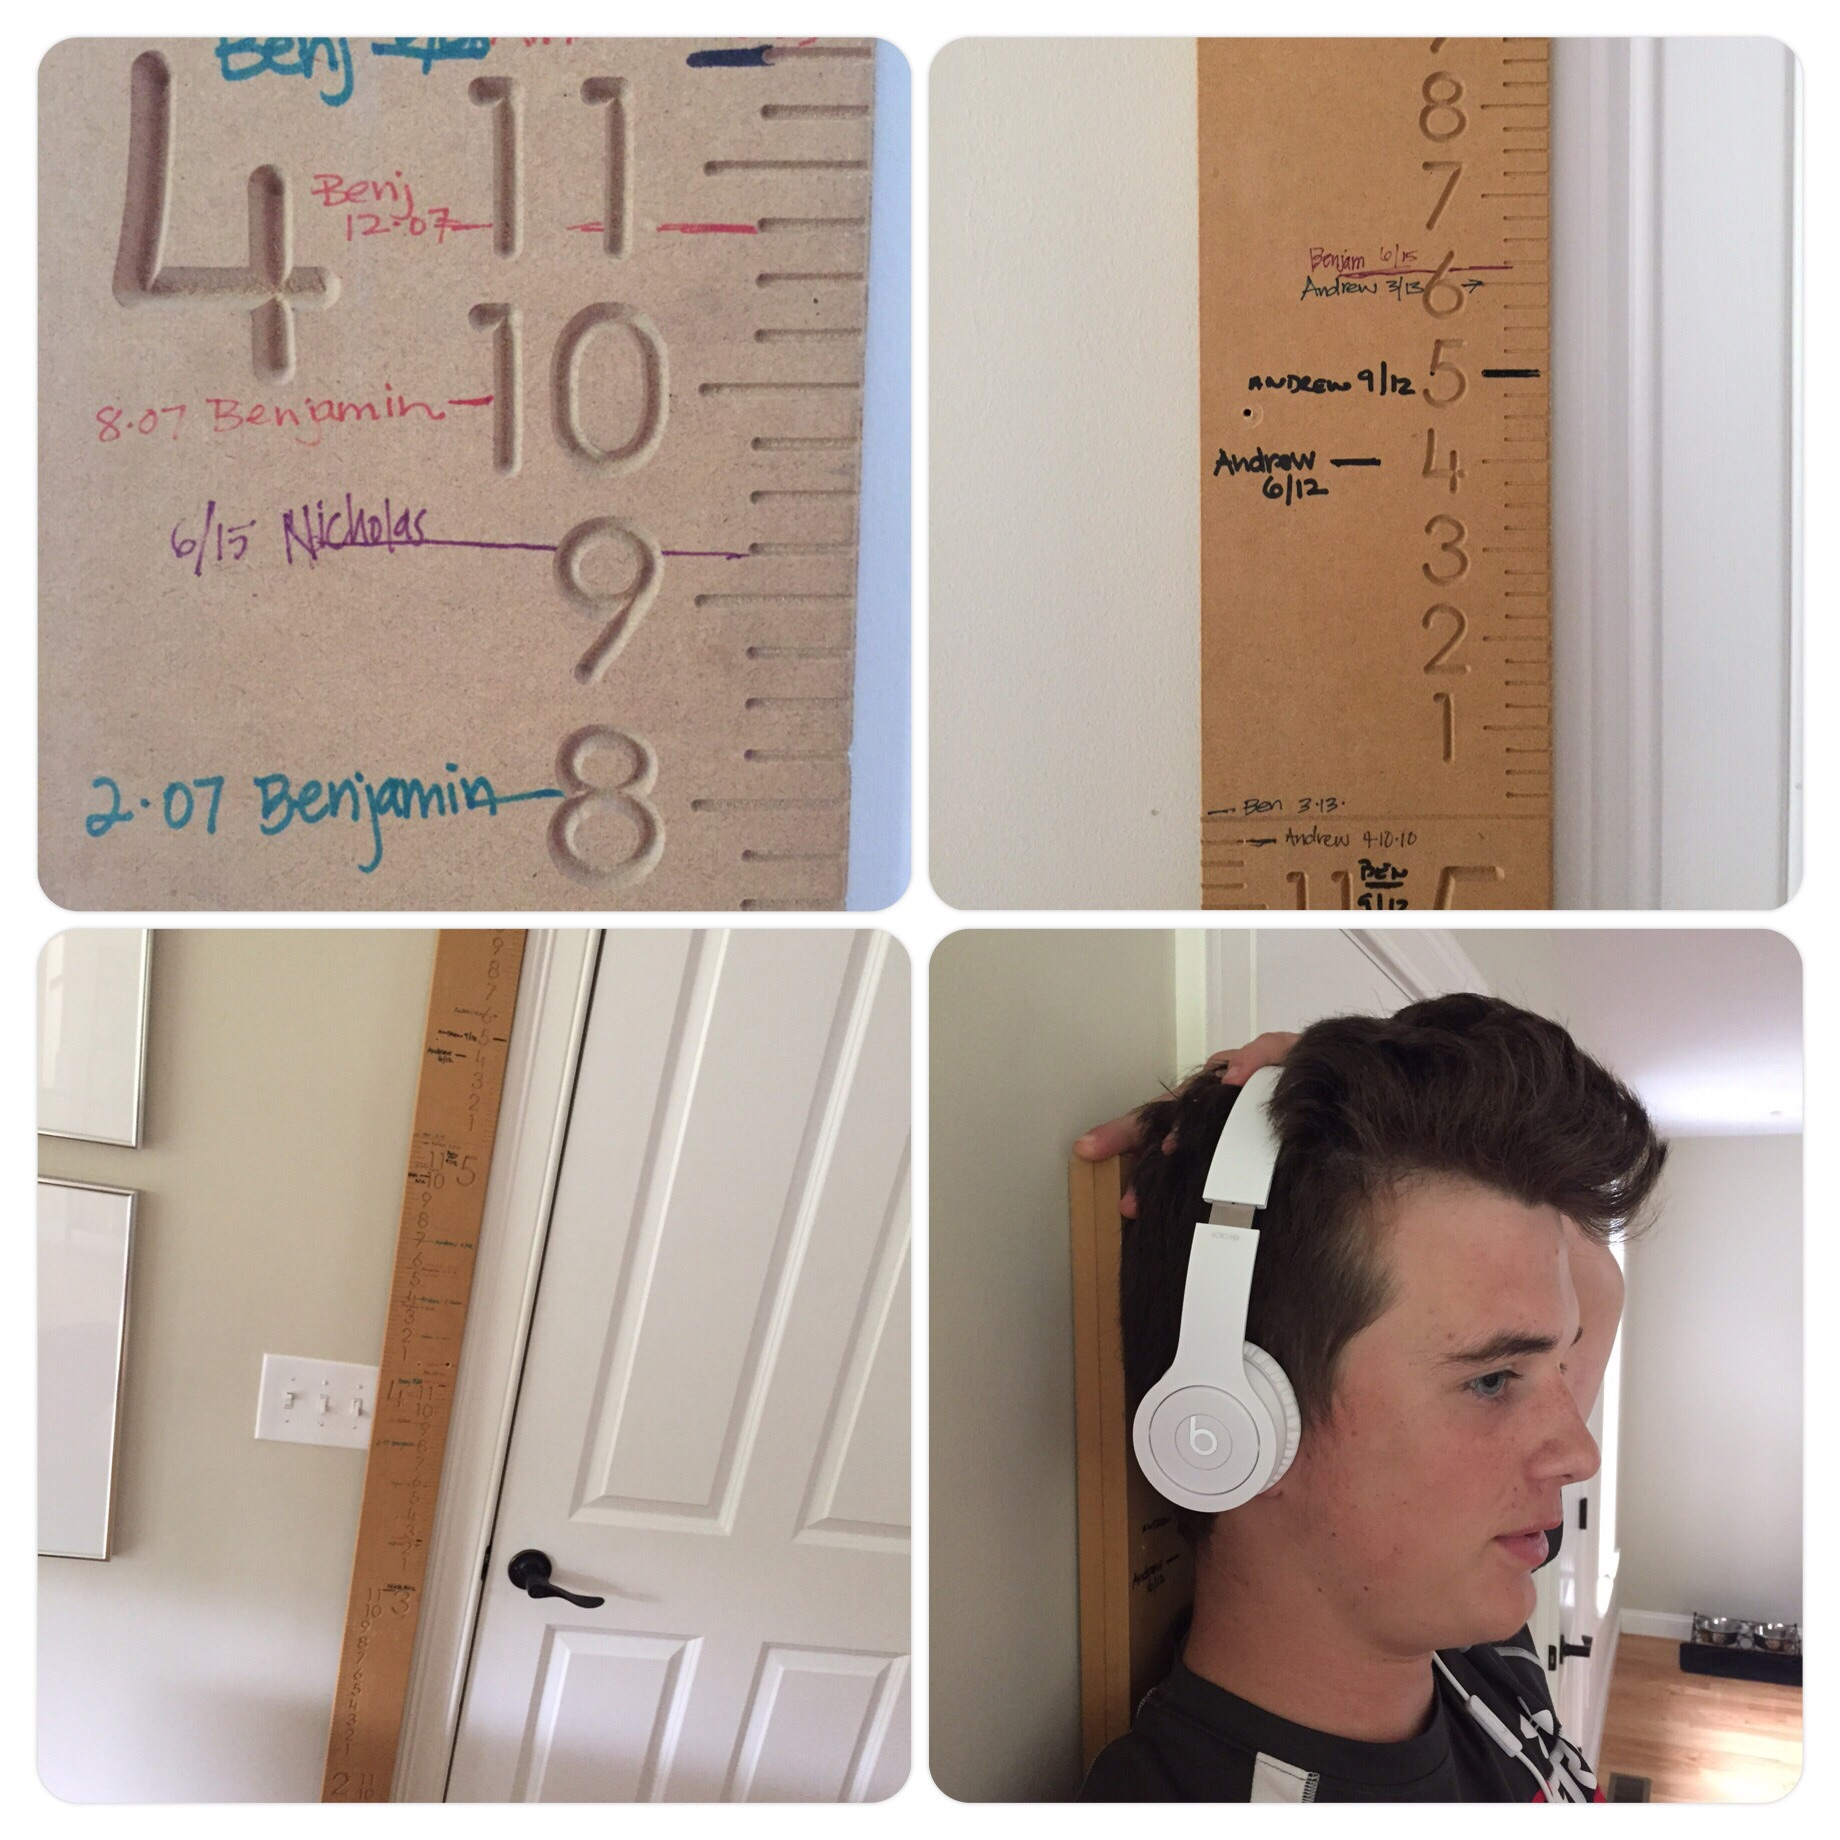 Surprise HAPPY mail from Utah. Dad mailedour growth chart we forgot to pack - thank you!